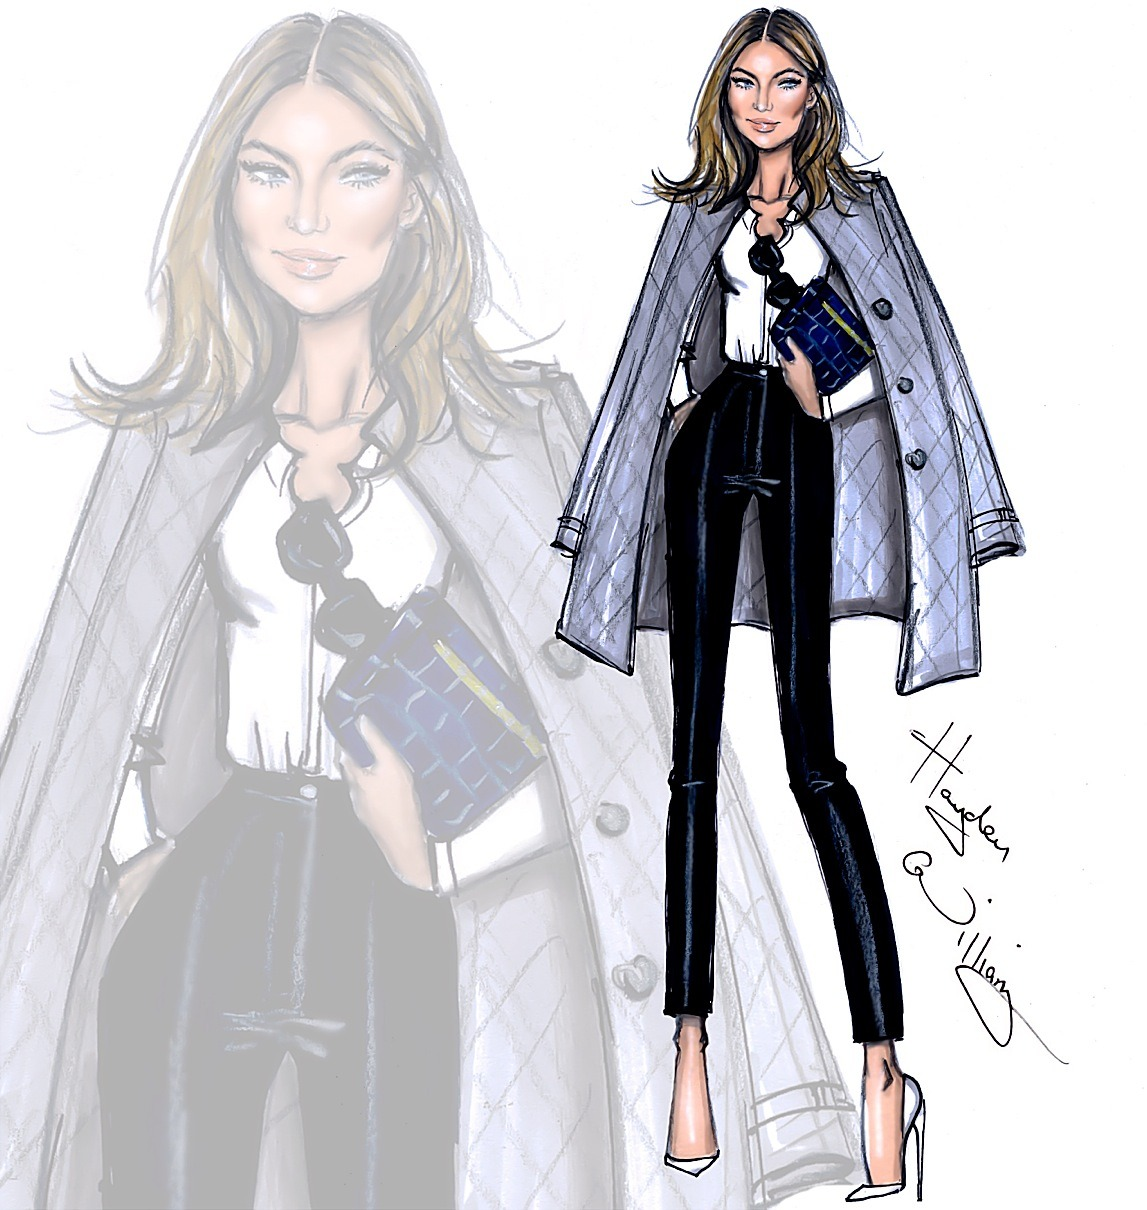 Natalie Massenet - Founder of Net-a-Porter - Women Empowerment - Harper Williams Illustration natalie massenet Women Empowerment: Net-a-Porter Founder Natalie Massenet 69ed40792f26d2dfcdc6fb9401b09f6c